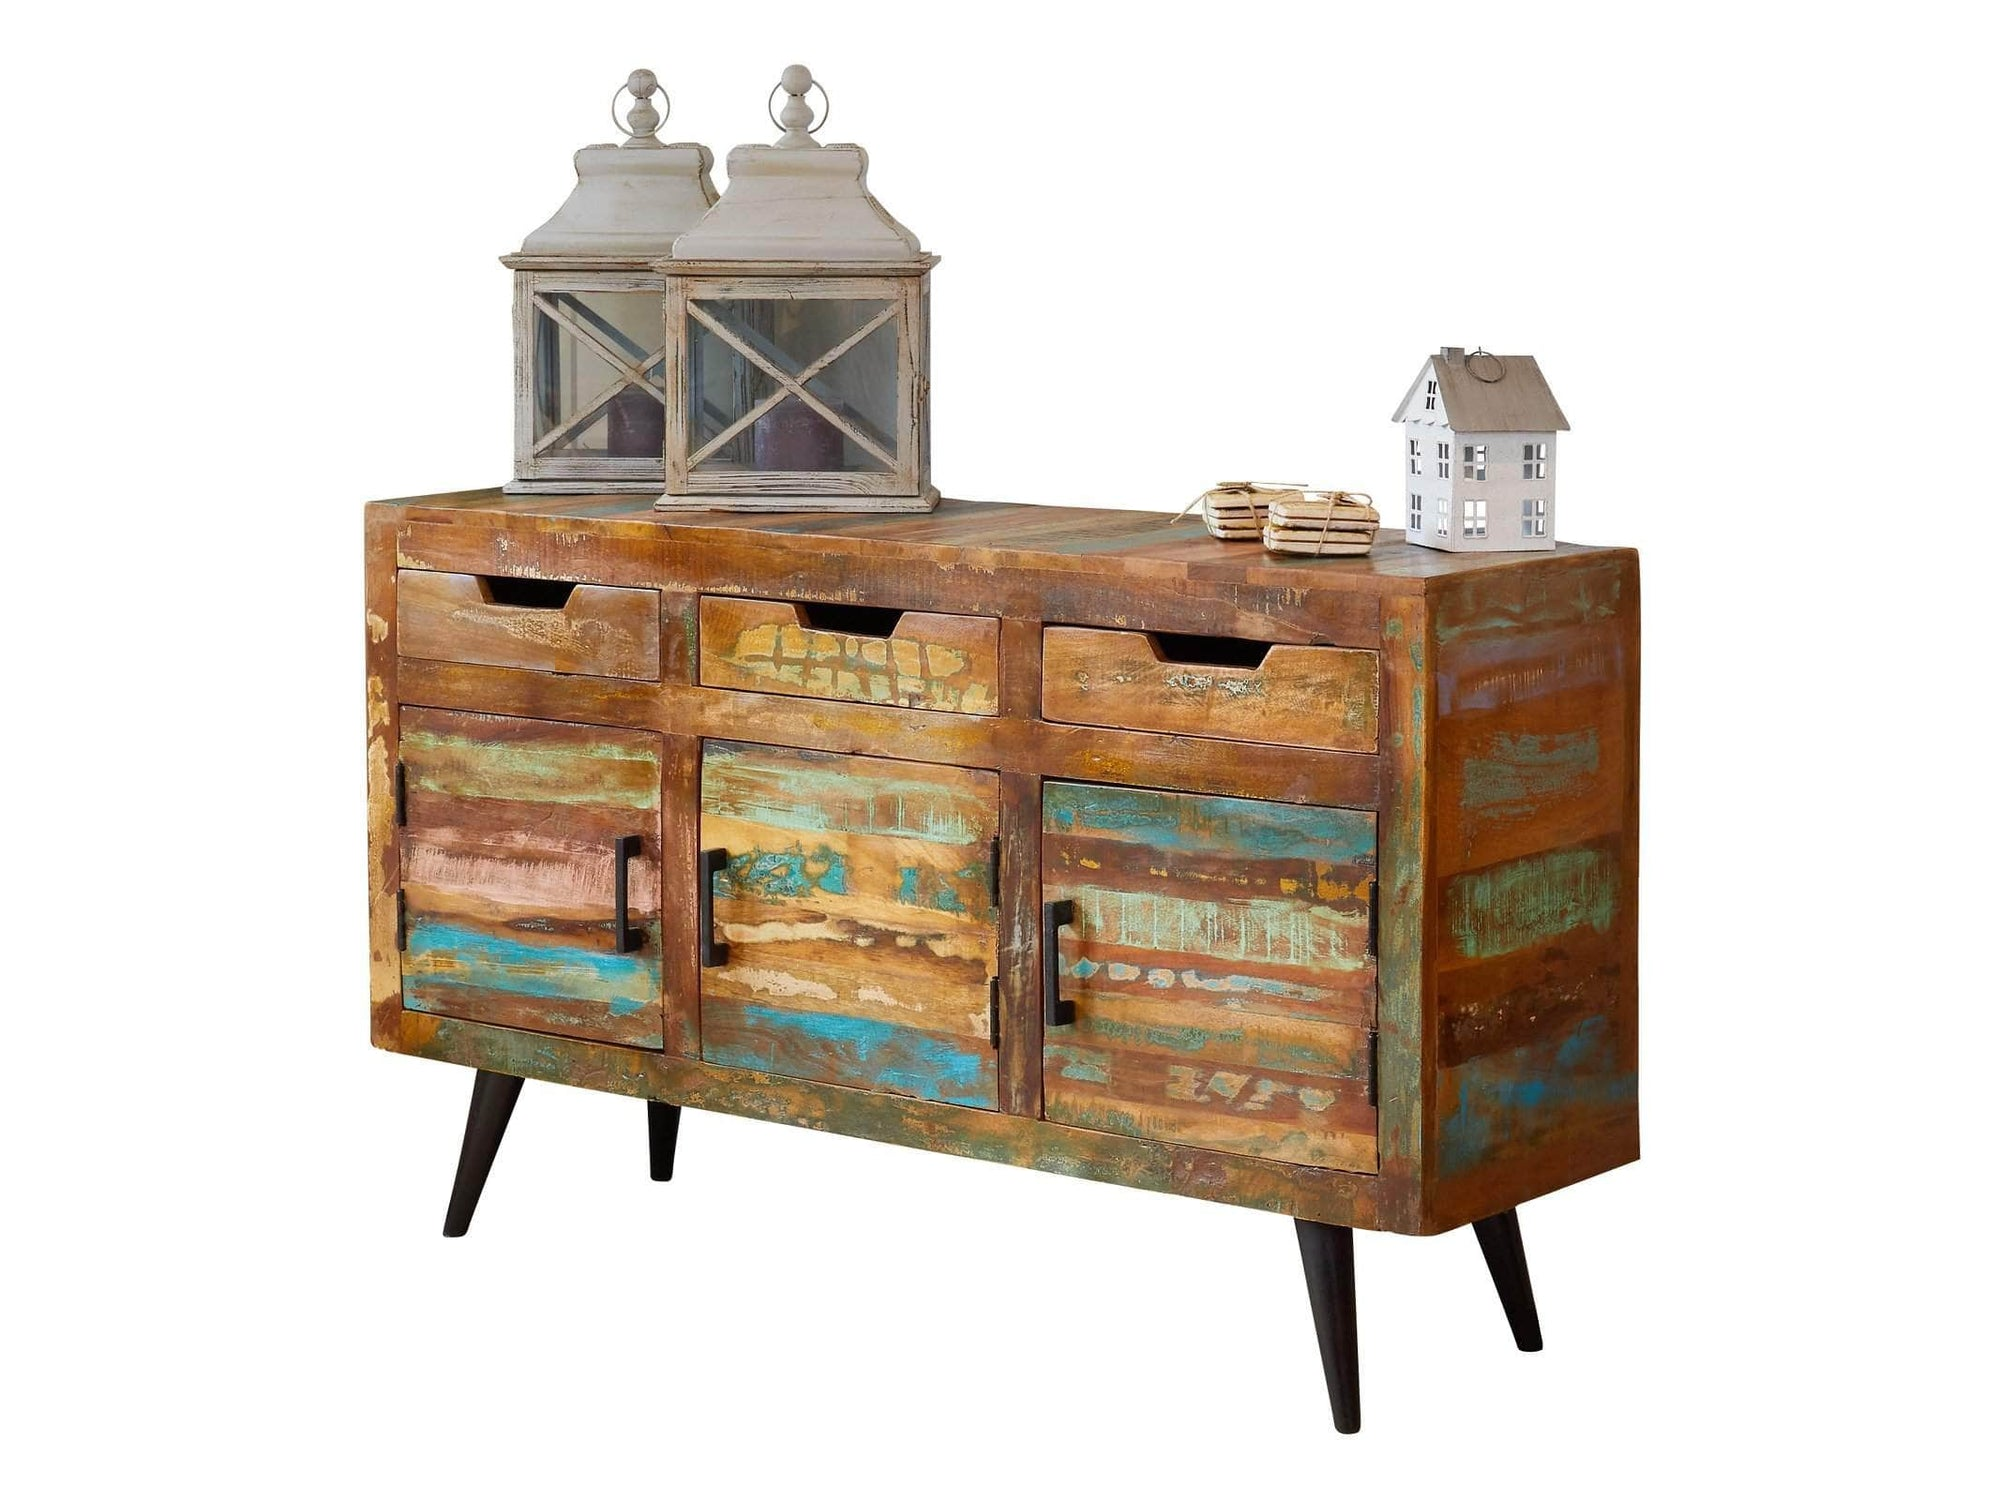 Large multi-coloured sideboard made from reclaimed wood and steel legs. Three drawers are above two cupboard areas.